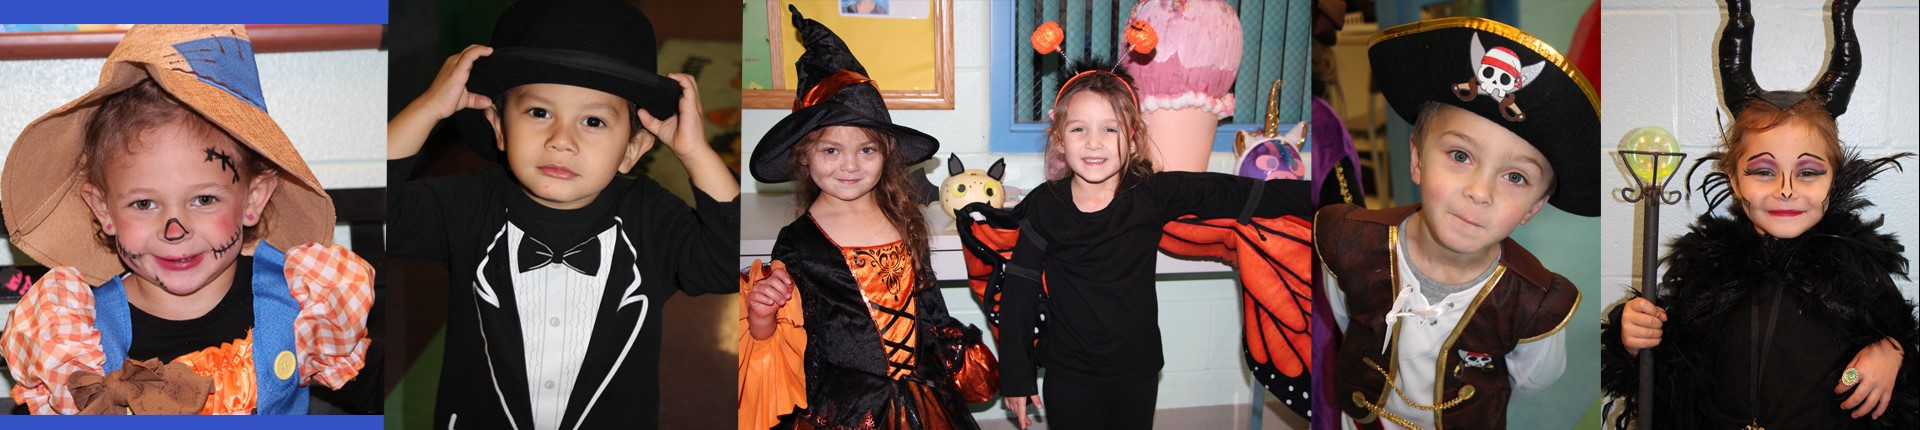 Preschoolers dress up for Halloween